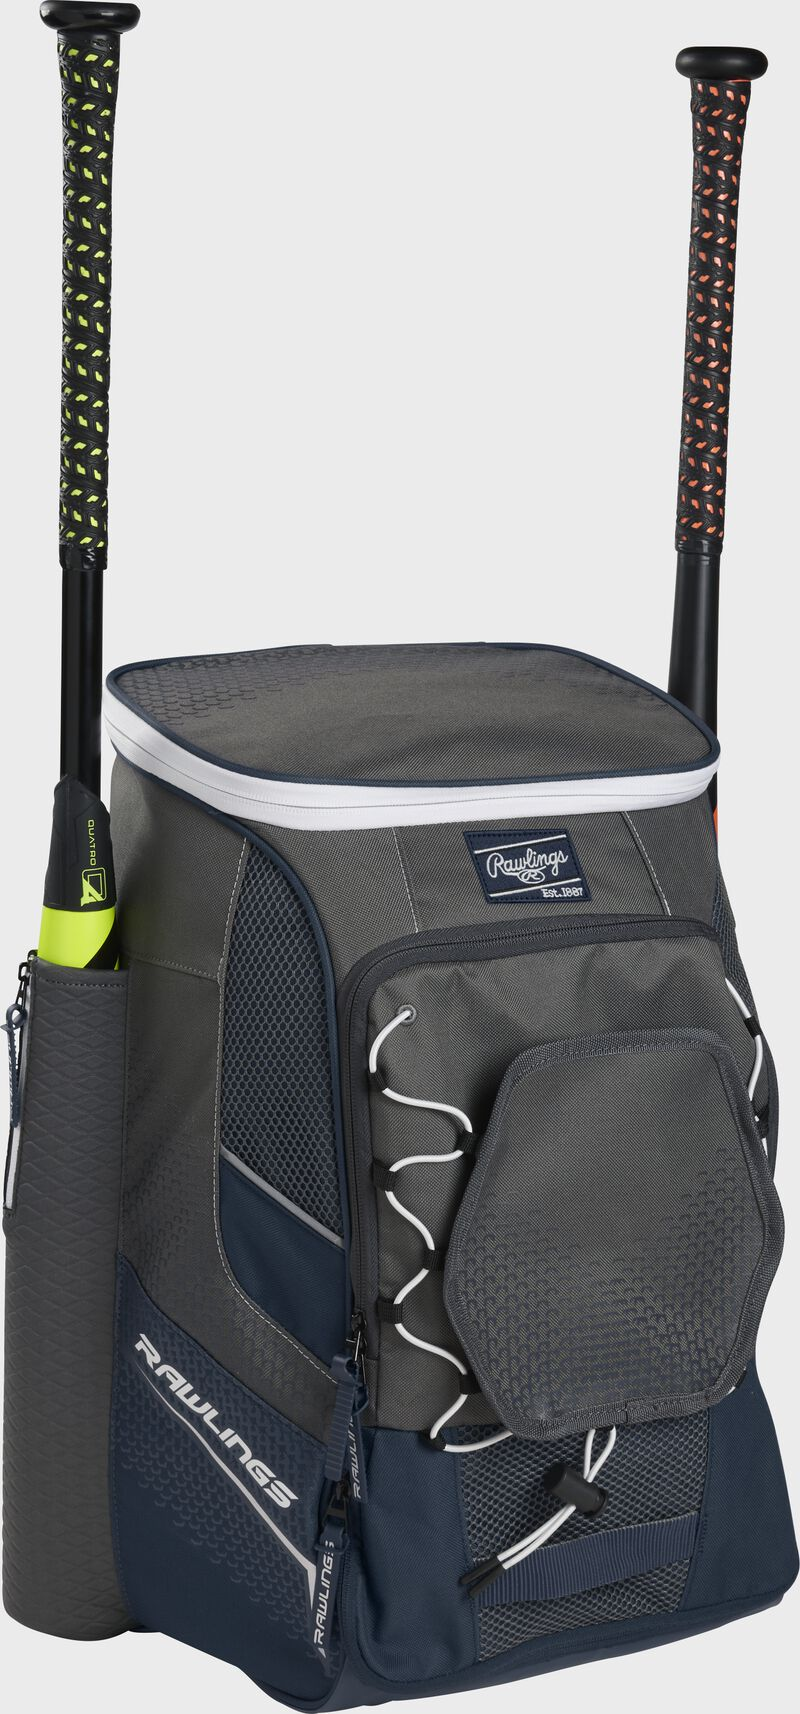 Front left angle of a navy Rawlings Impulse baseball gear backpack with two bats - SKU: IMPLSE-N